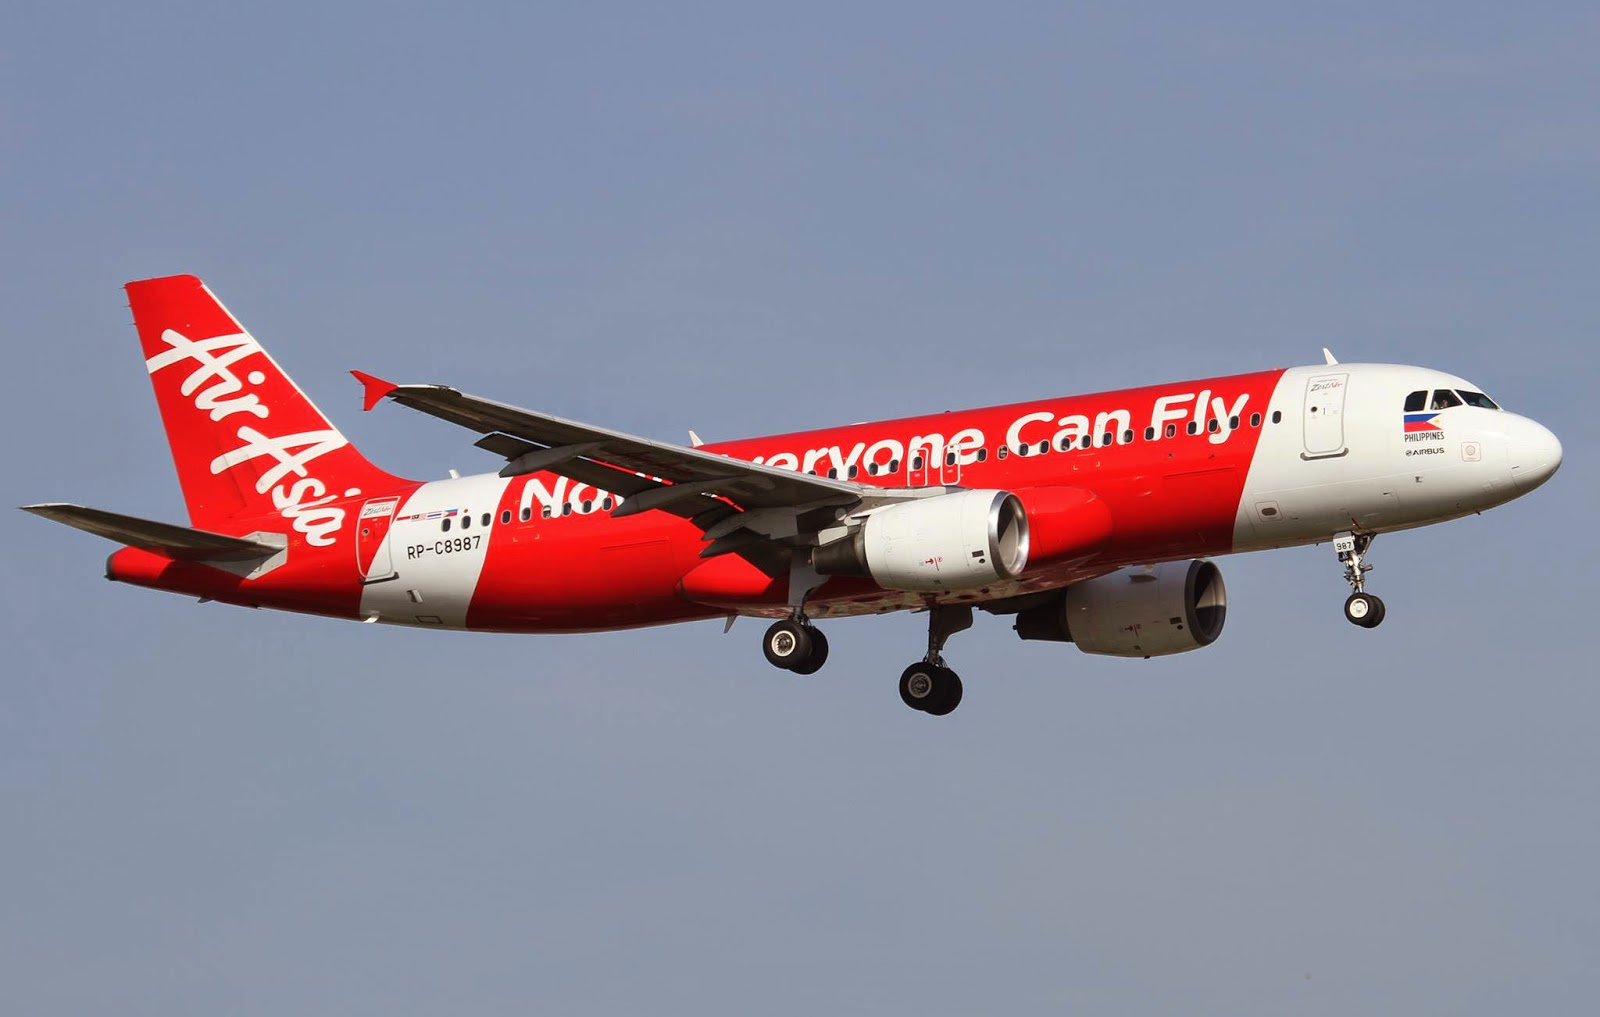 airasia information systems Airasia information system use by air asia information system of air asia information systems are implemented within an organization for the purpose of improving.